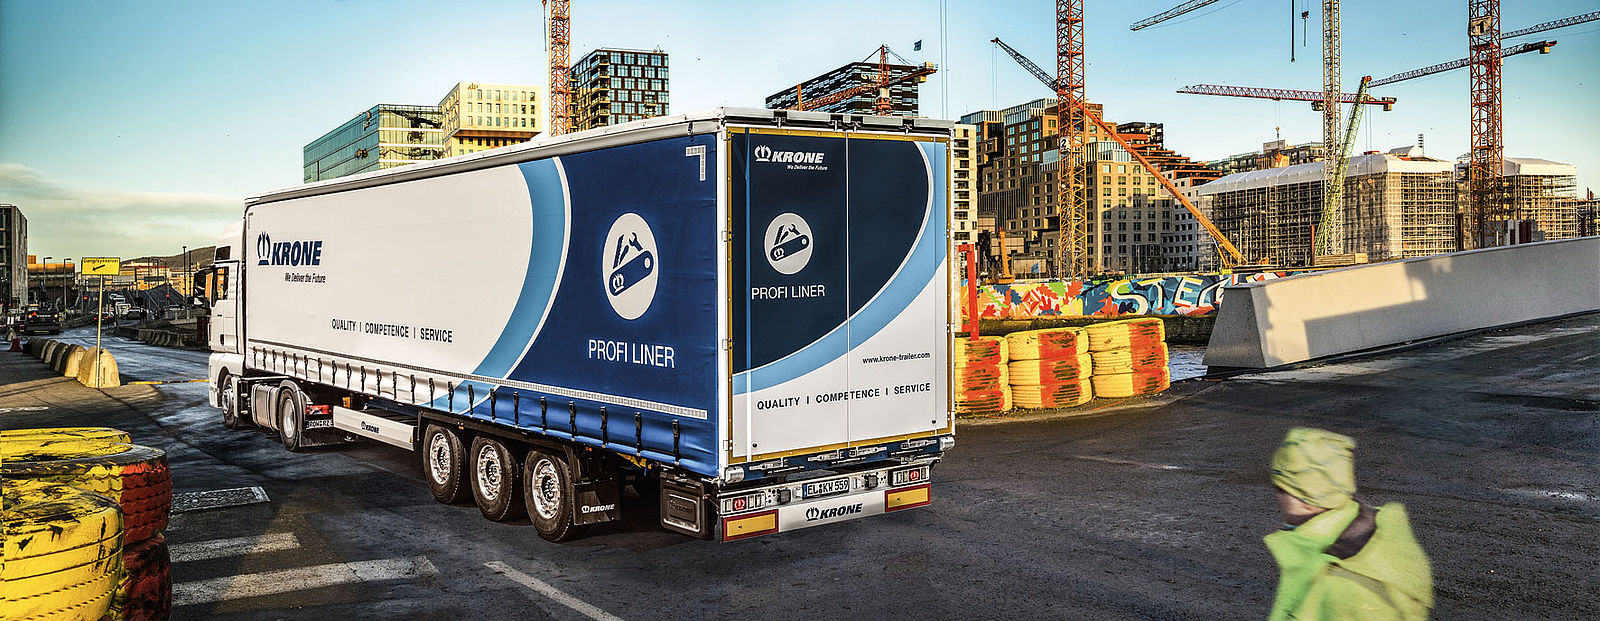 Cross-border transports with Profi Liner TIR